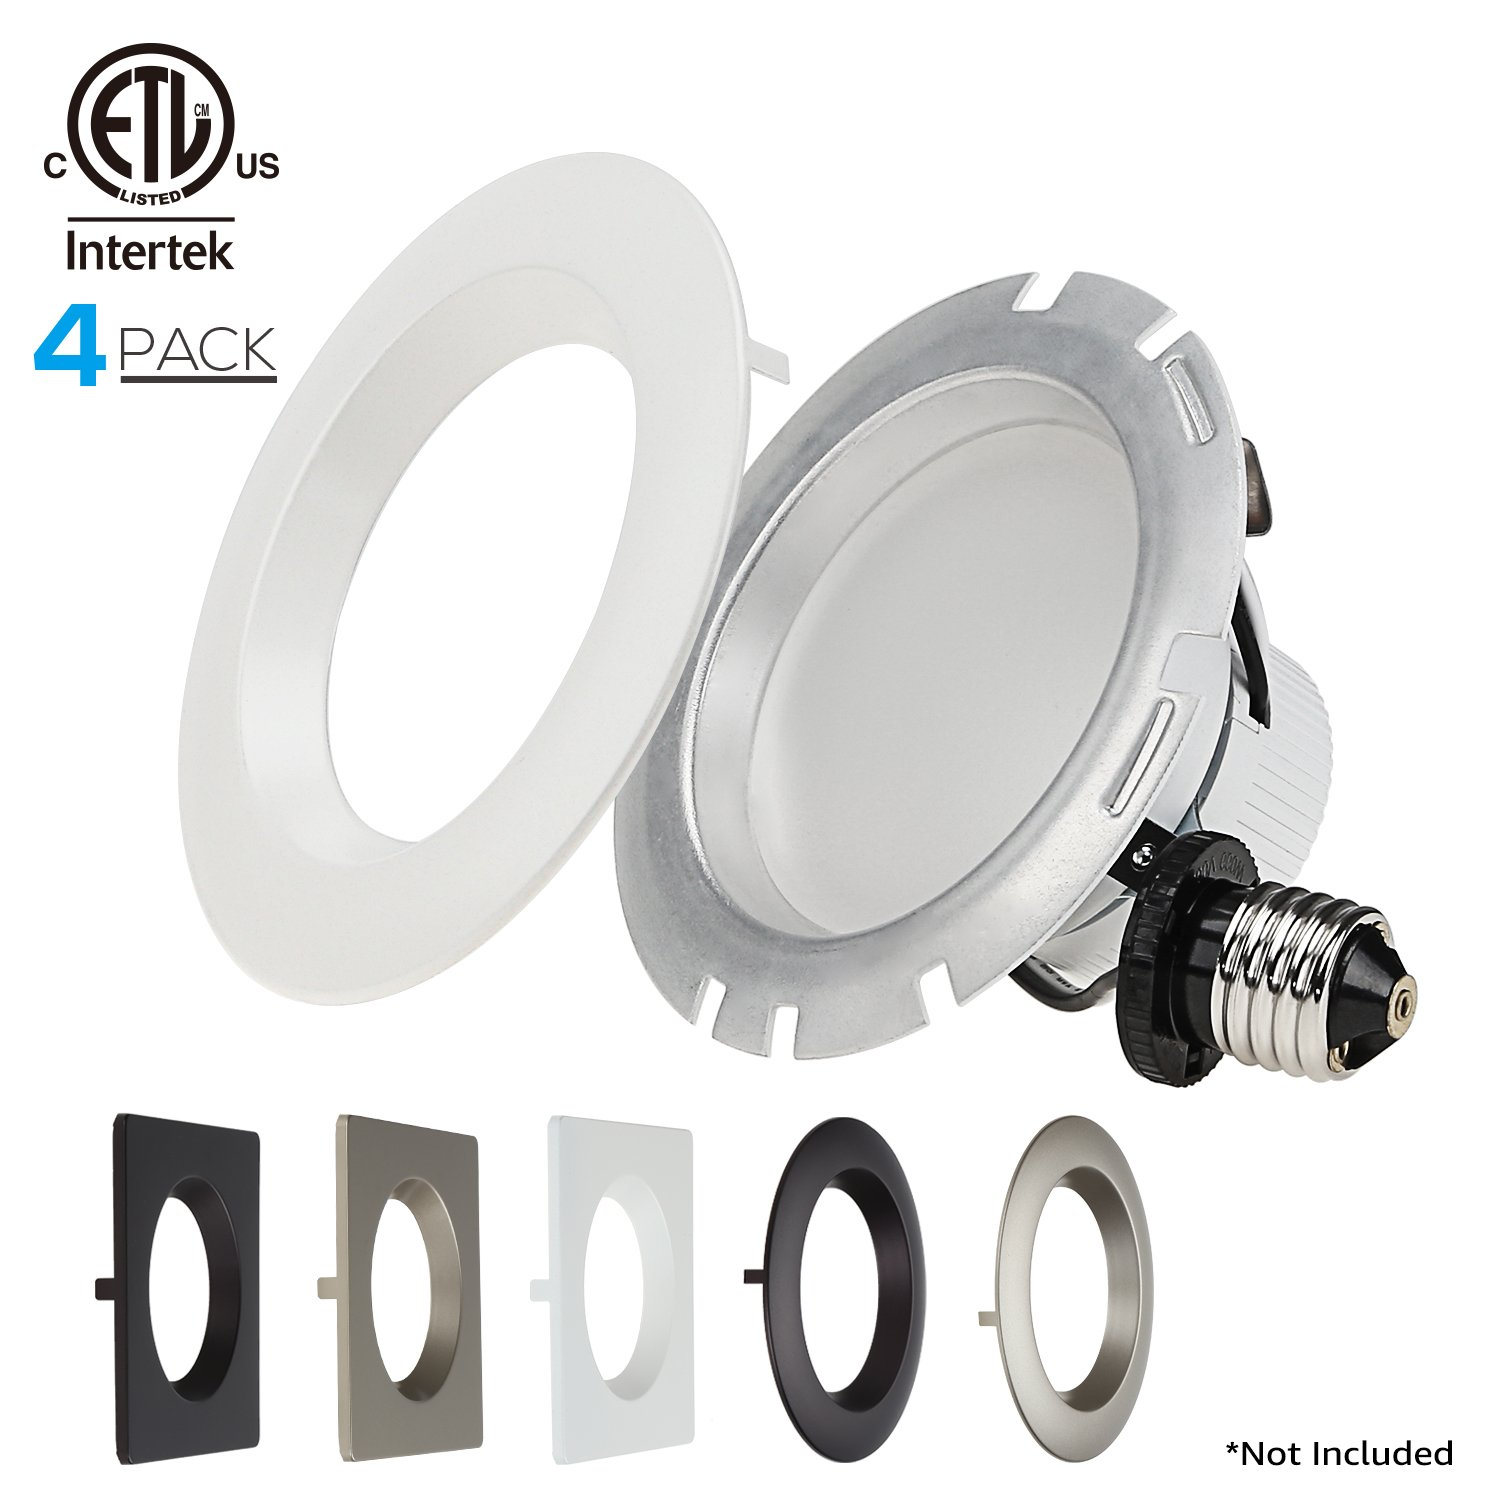 4-PACK 4 Inch Dimmable Recessed LED Downlight, 10W (75W Equiv.), White Trim Attached, Trim Interchangeable, For All Furnishing Styles, 2700K Soft White, ETL-listed, 5 YEAR WARRANTY by TORCHSTAR